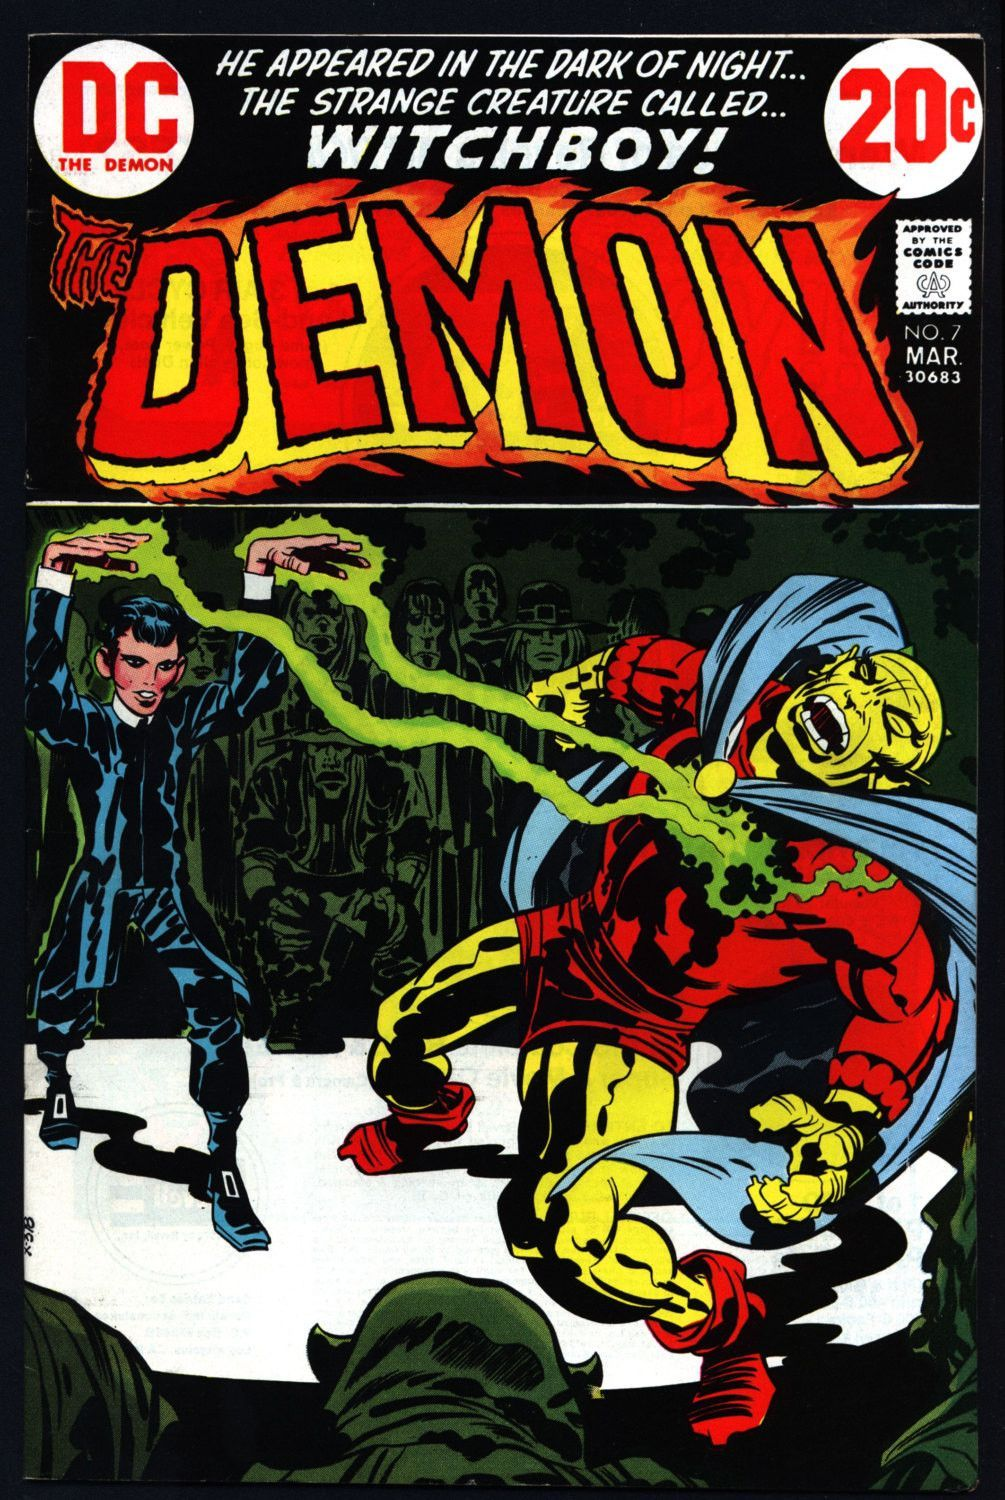 The DEMON #7 1972 Jack Kirby DC Comics Etrigan Camelot Merlin Fourth World Supernatural Cult Monster Anti-SuperHero